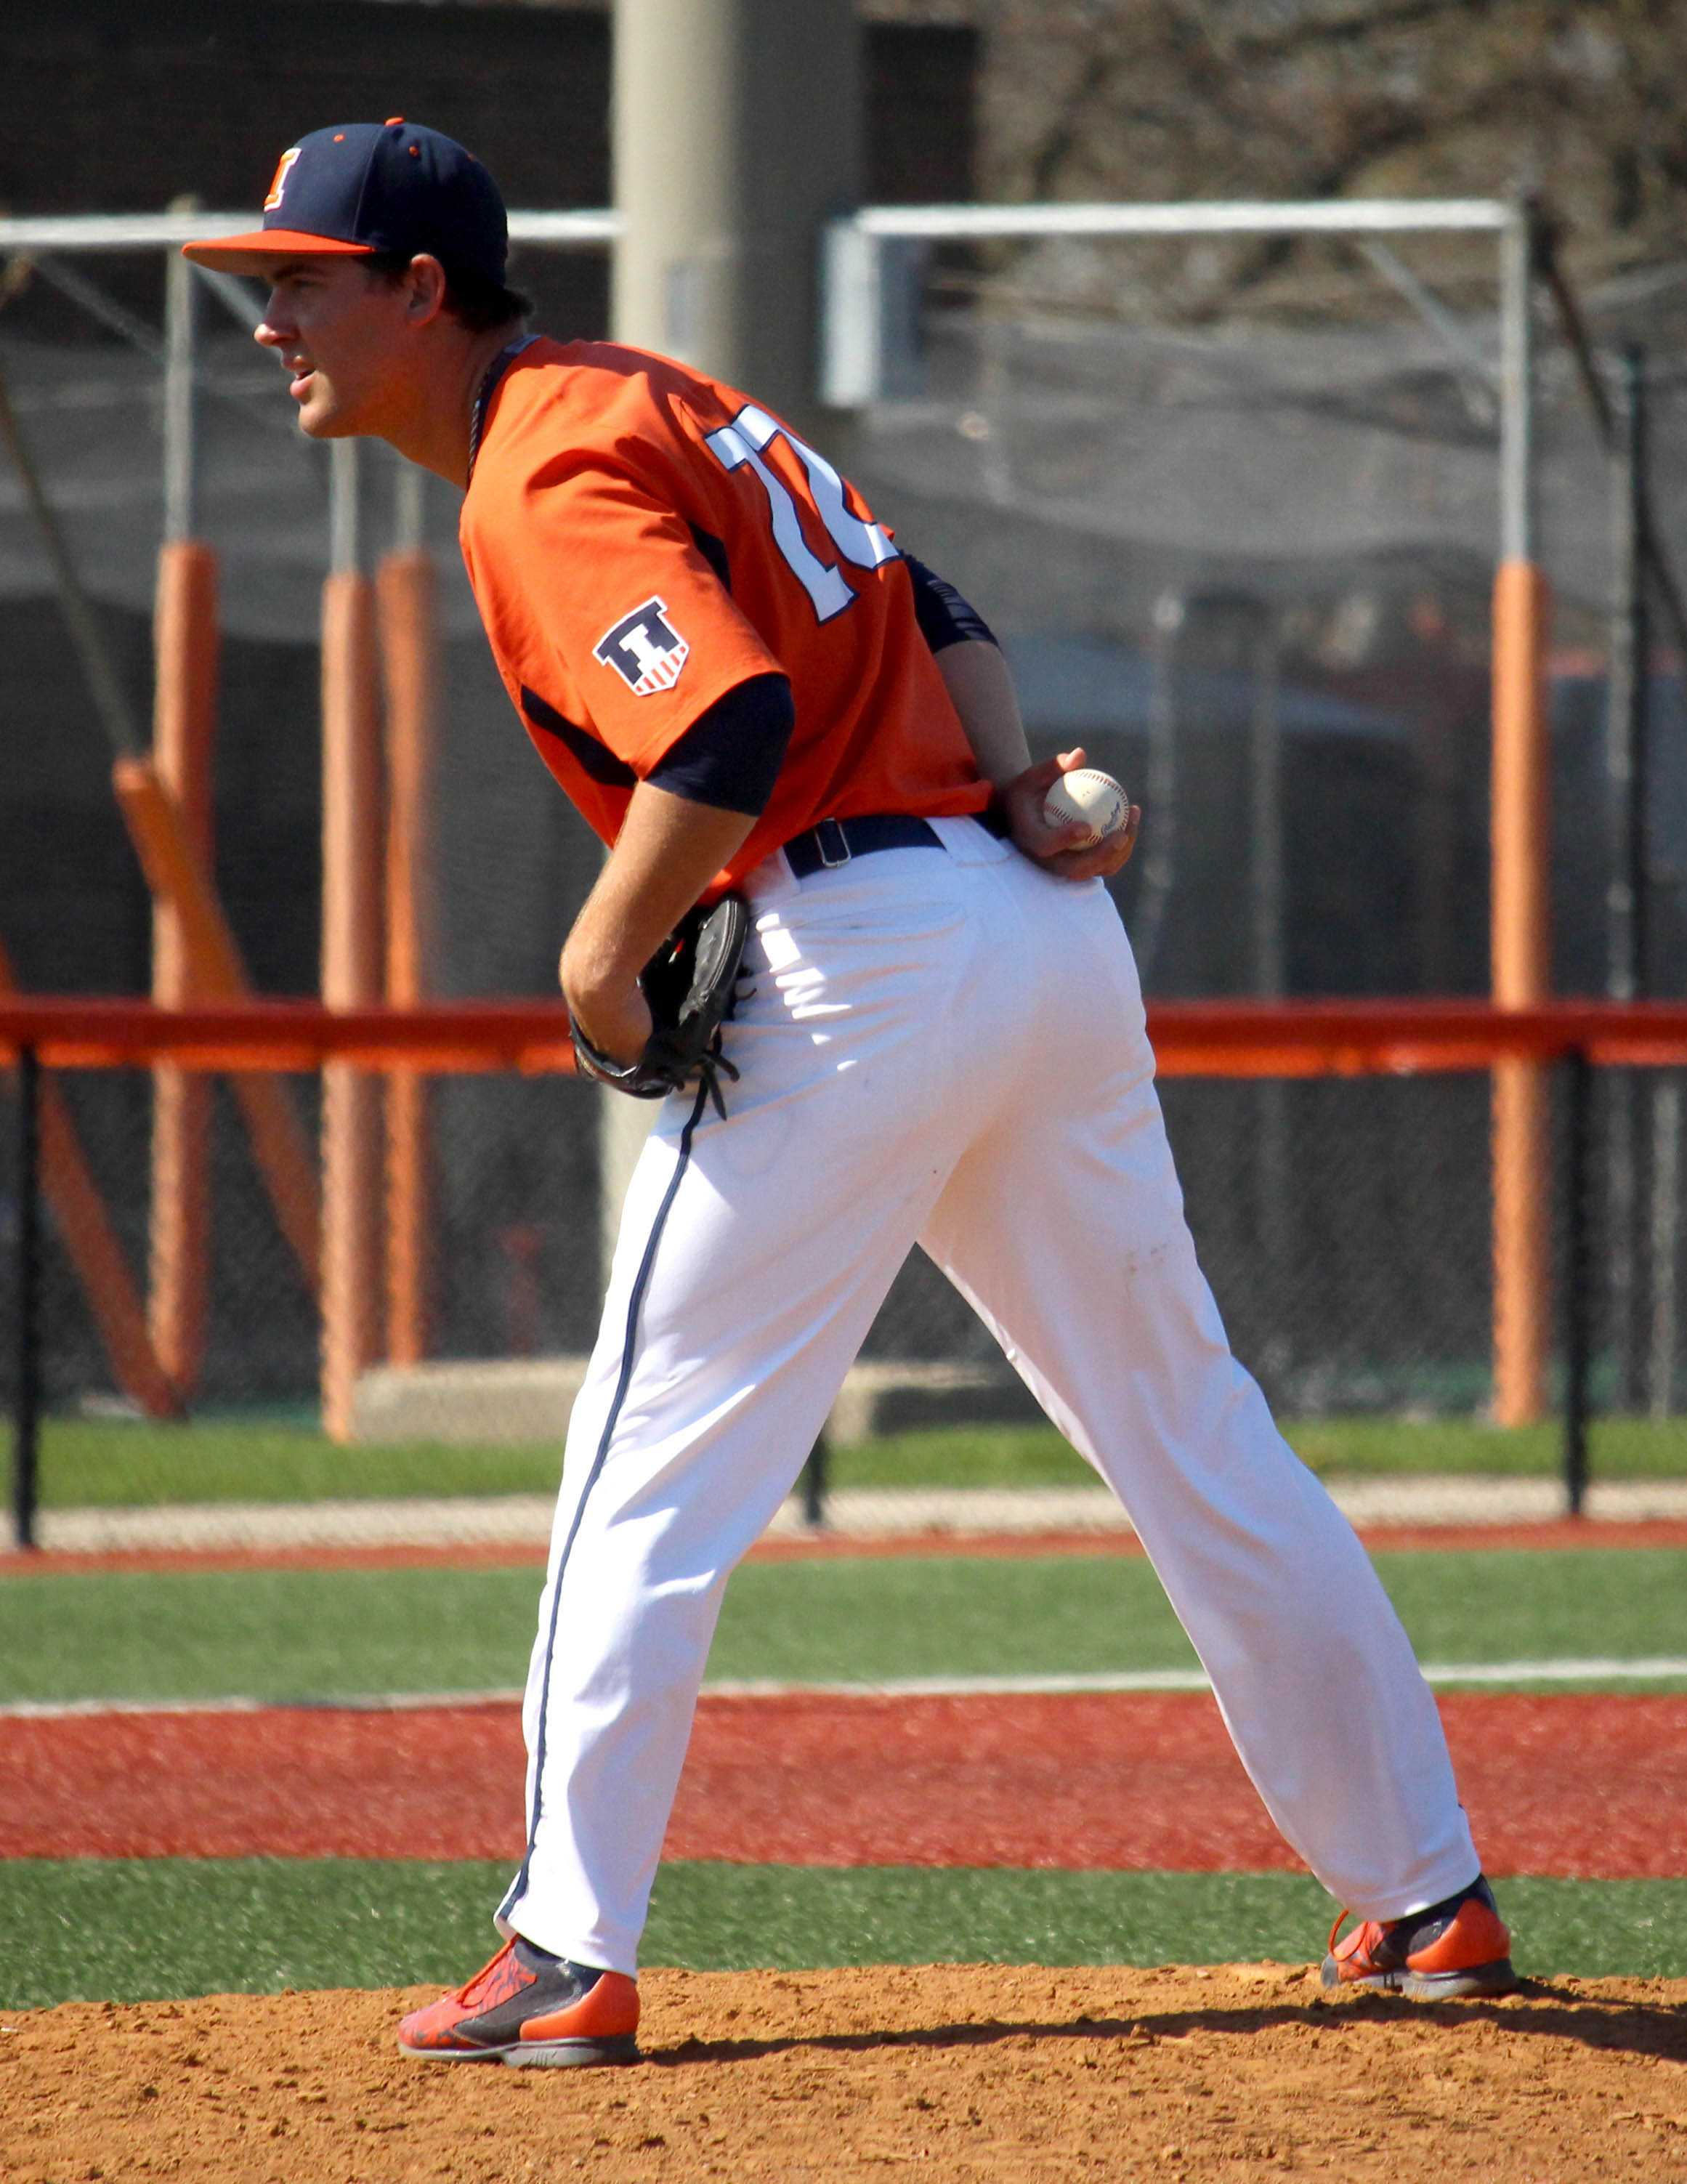 Nick Blackburn pitches the ball at the Illini Field on April 17, 2016. Illinois played against Saint Louis and won 6-2.